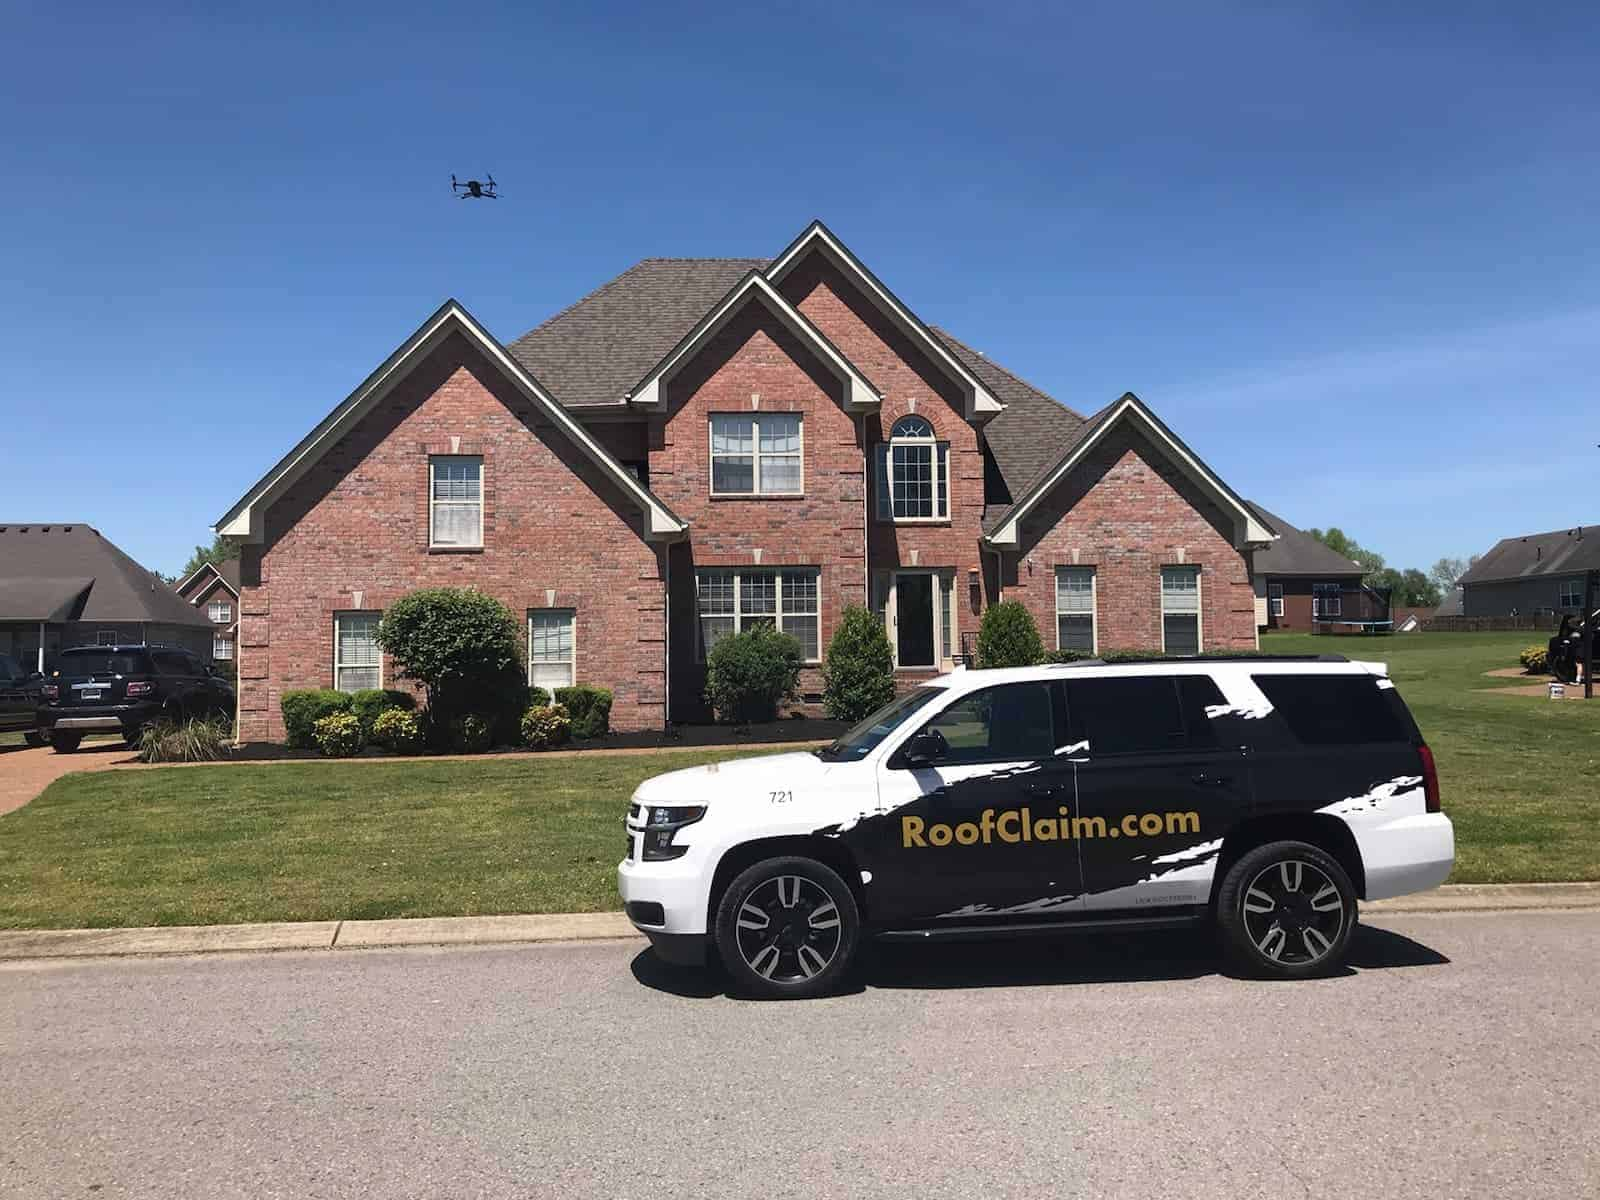 RoofClaim.com Doing Roof Inspection on Brick Home With Shingle Roof